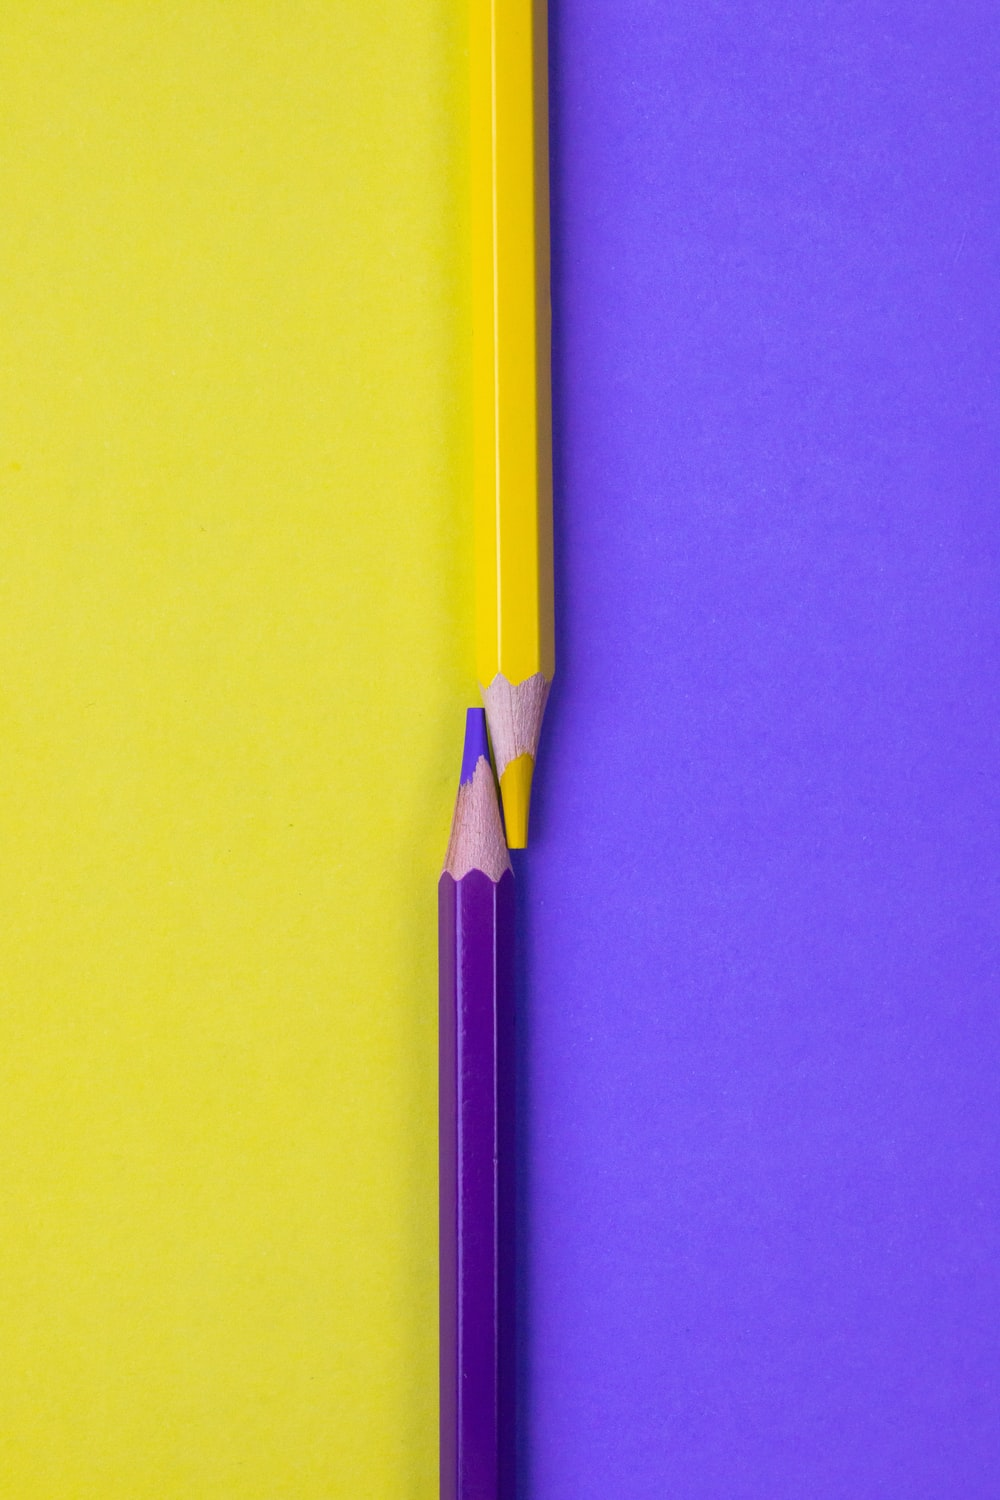 yellow pencil on yellow surface